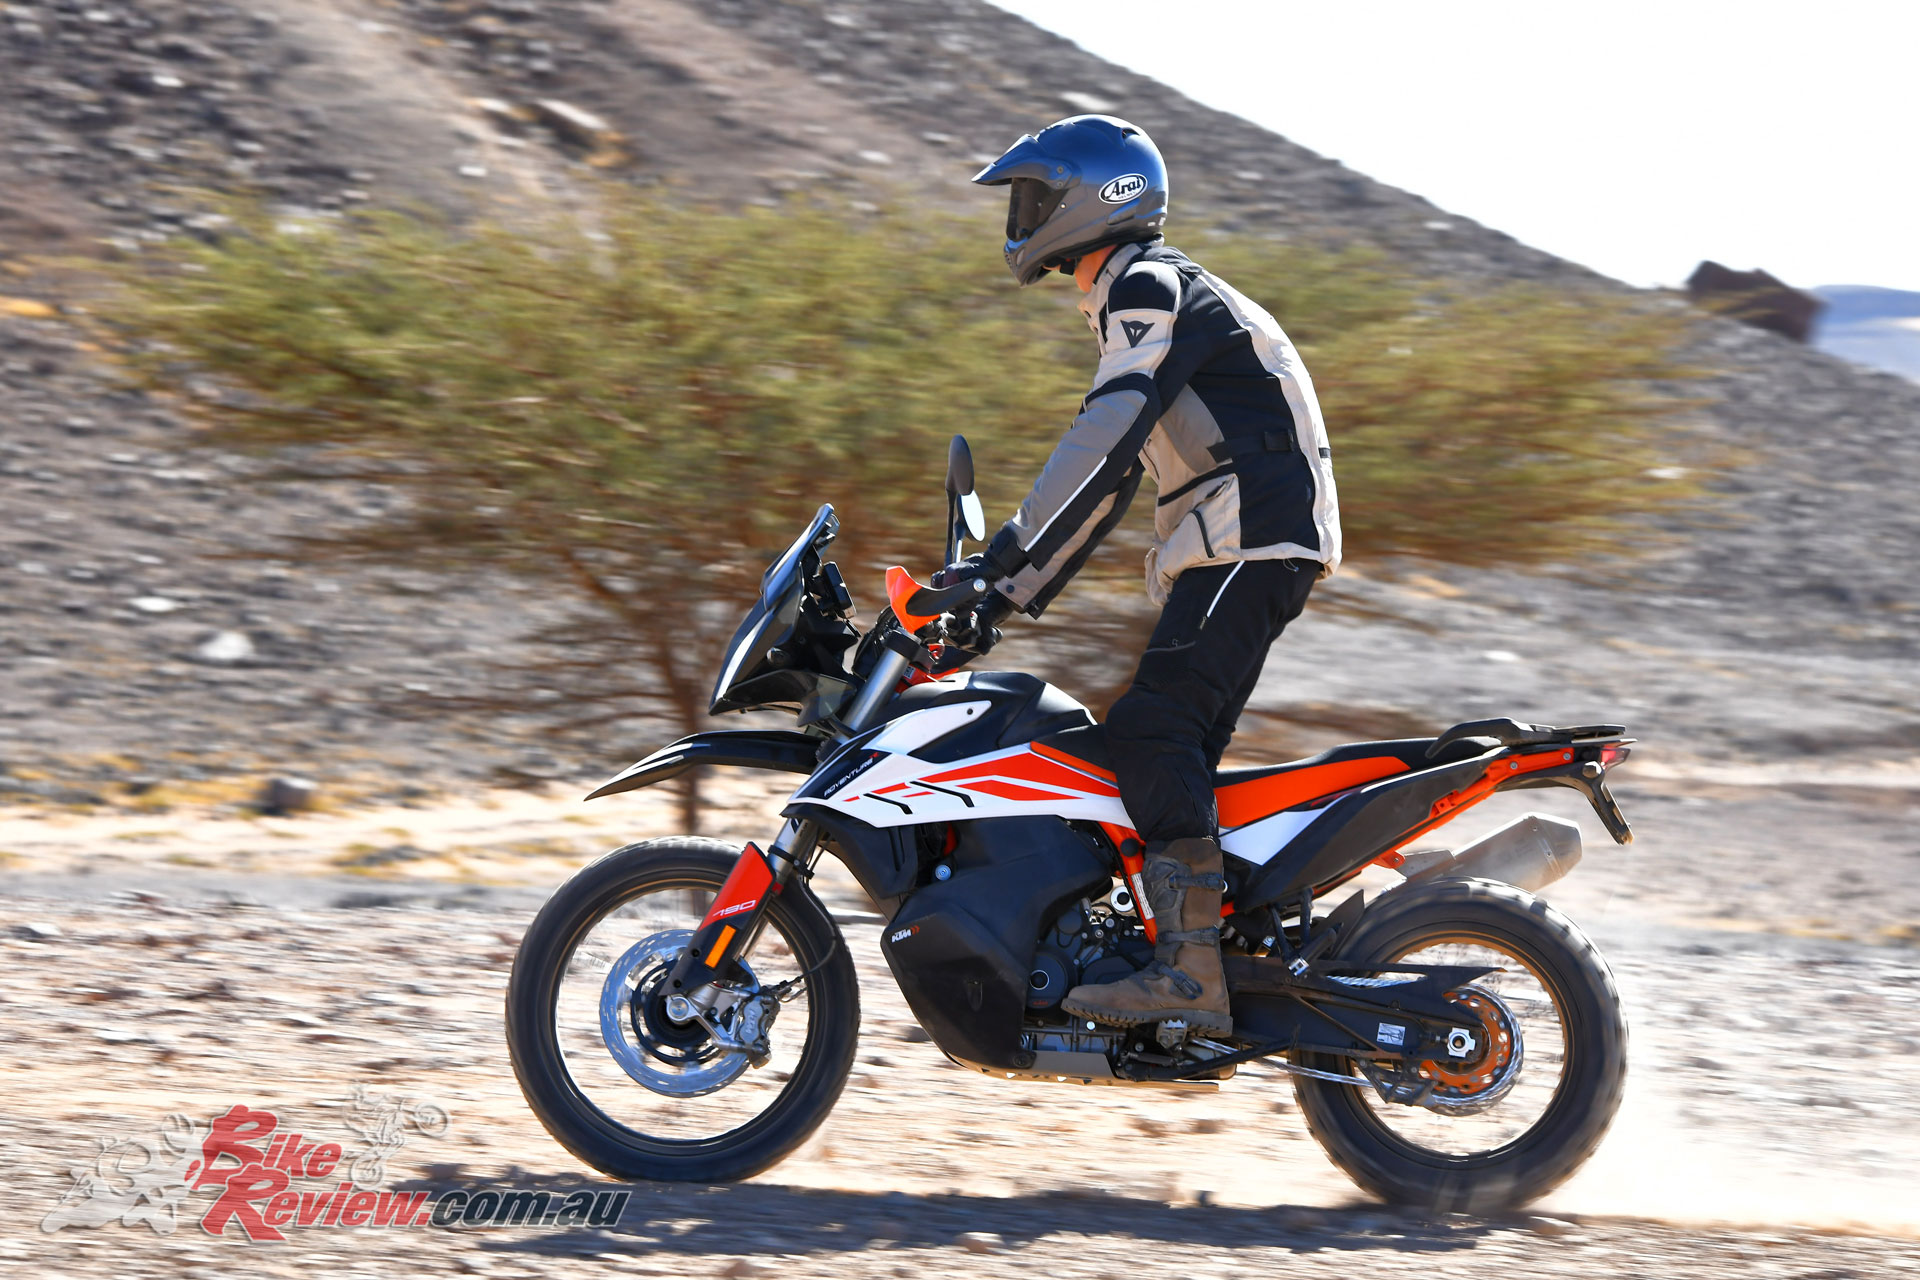 2019 KTM 790 Adventure R - KTM's Dakar Team manager and ex-rider Jordi Viladoms introduced the new models